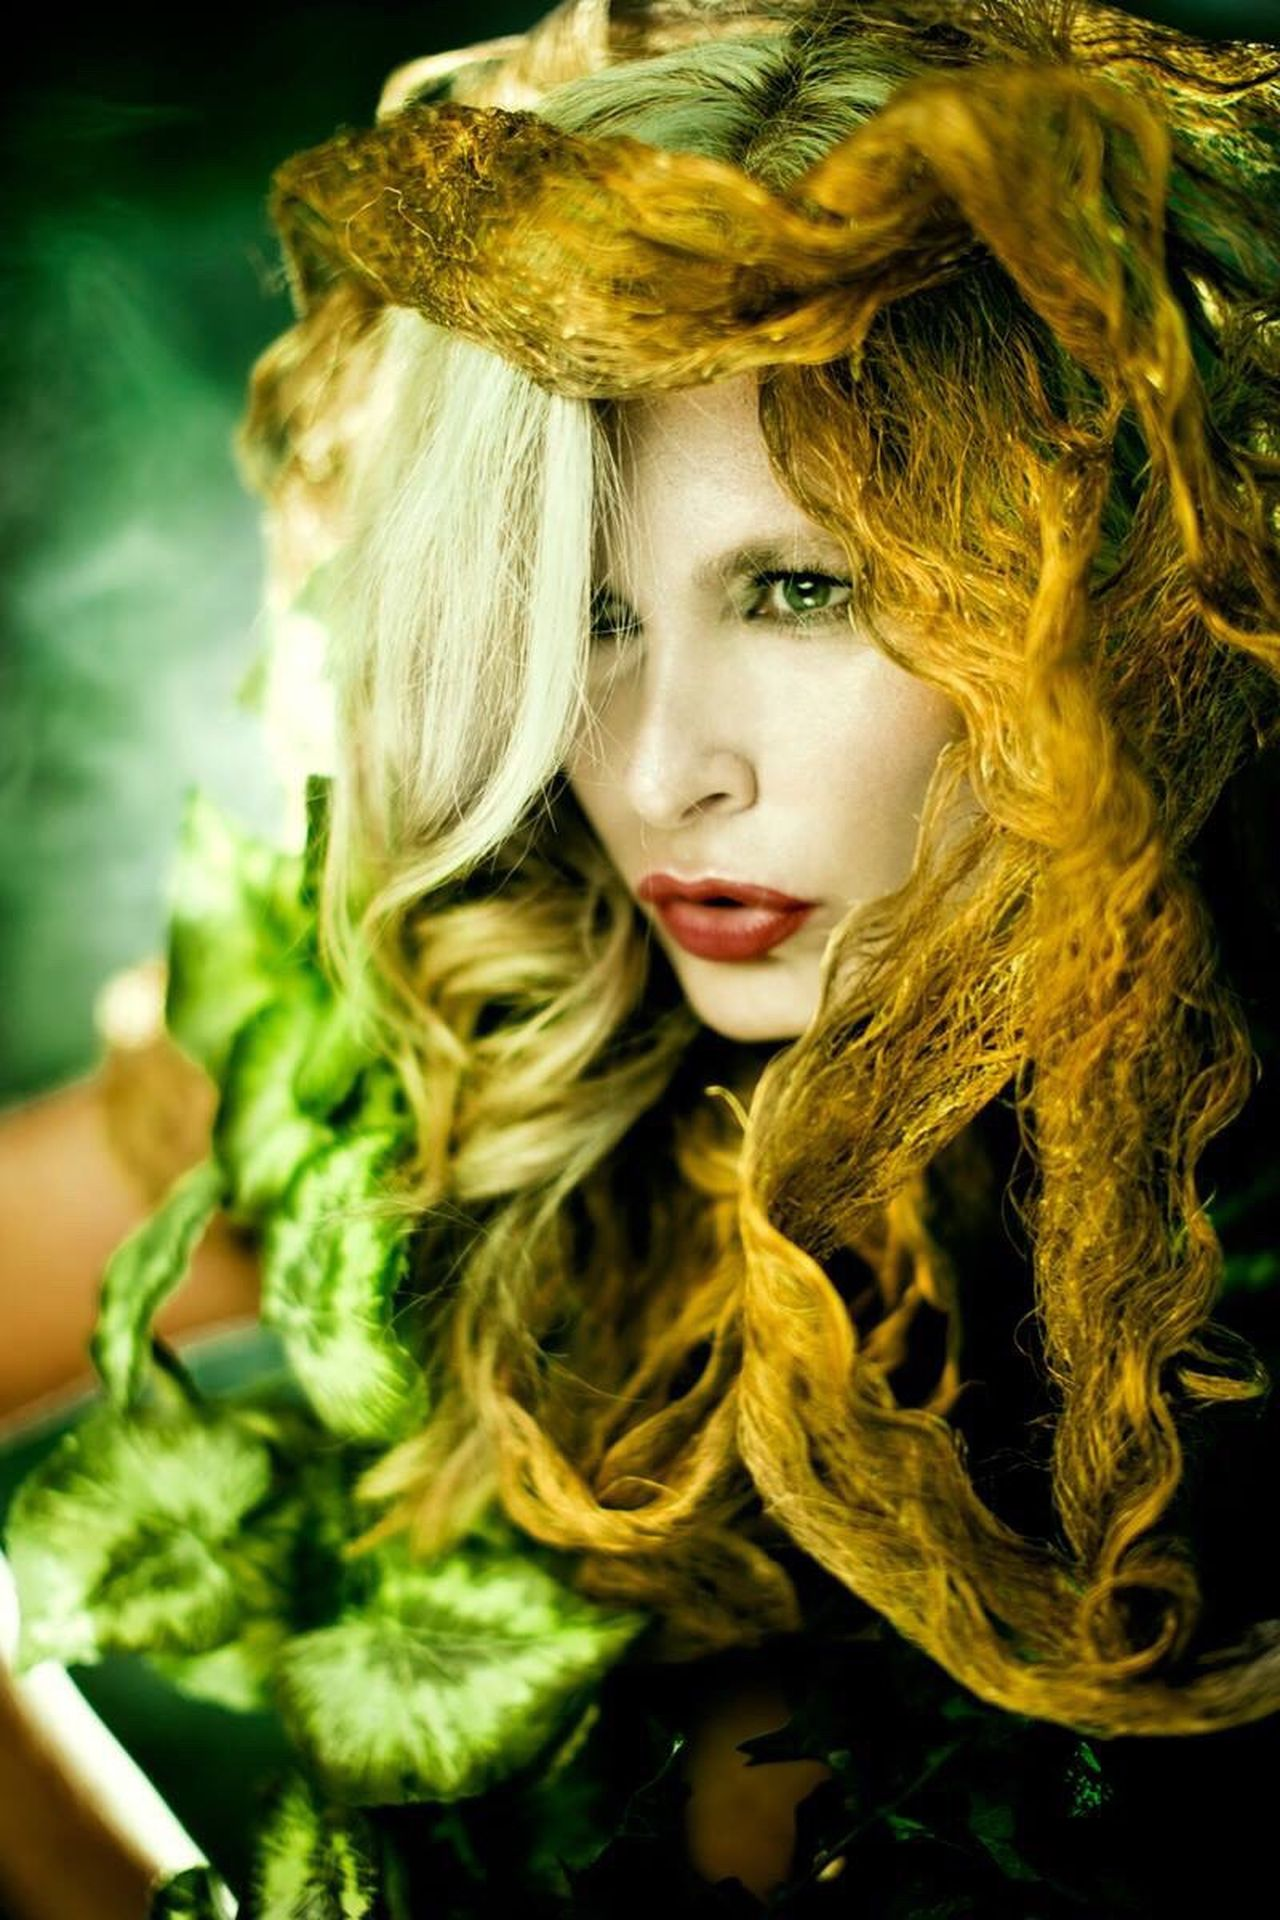 Green Elf Fairytale  Fantasy Fantasy Photography Fairytales & Dreams Dream Warrior Elegance And Class Hair Genny Energy Solitude Alone Women Portrait Leafs Photography Leafs Makeup Makeupartist